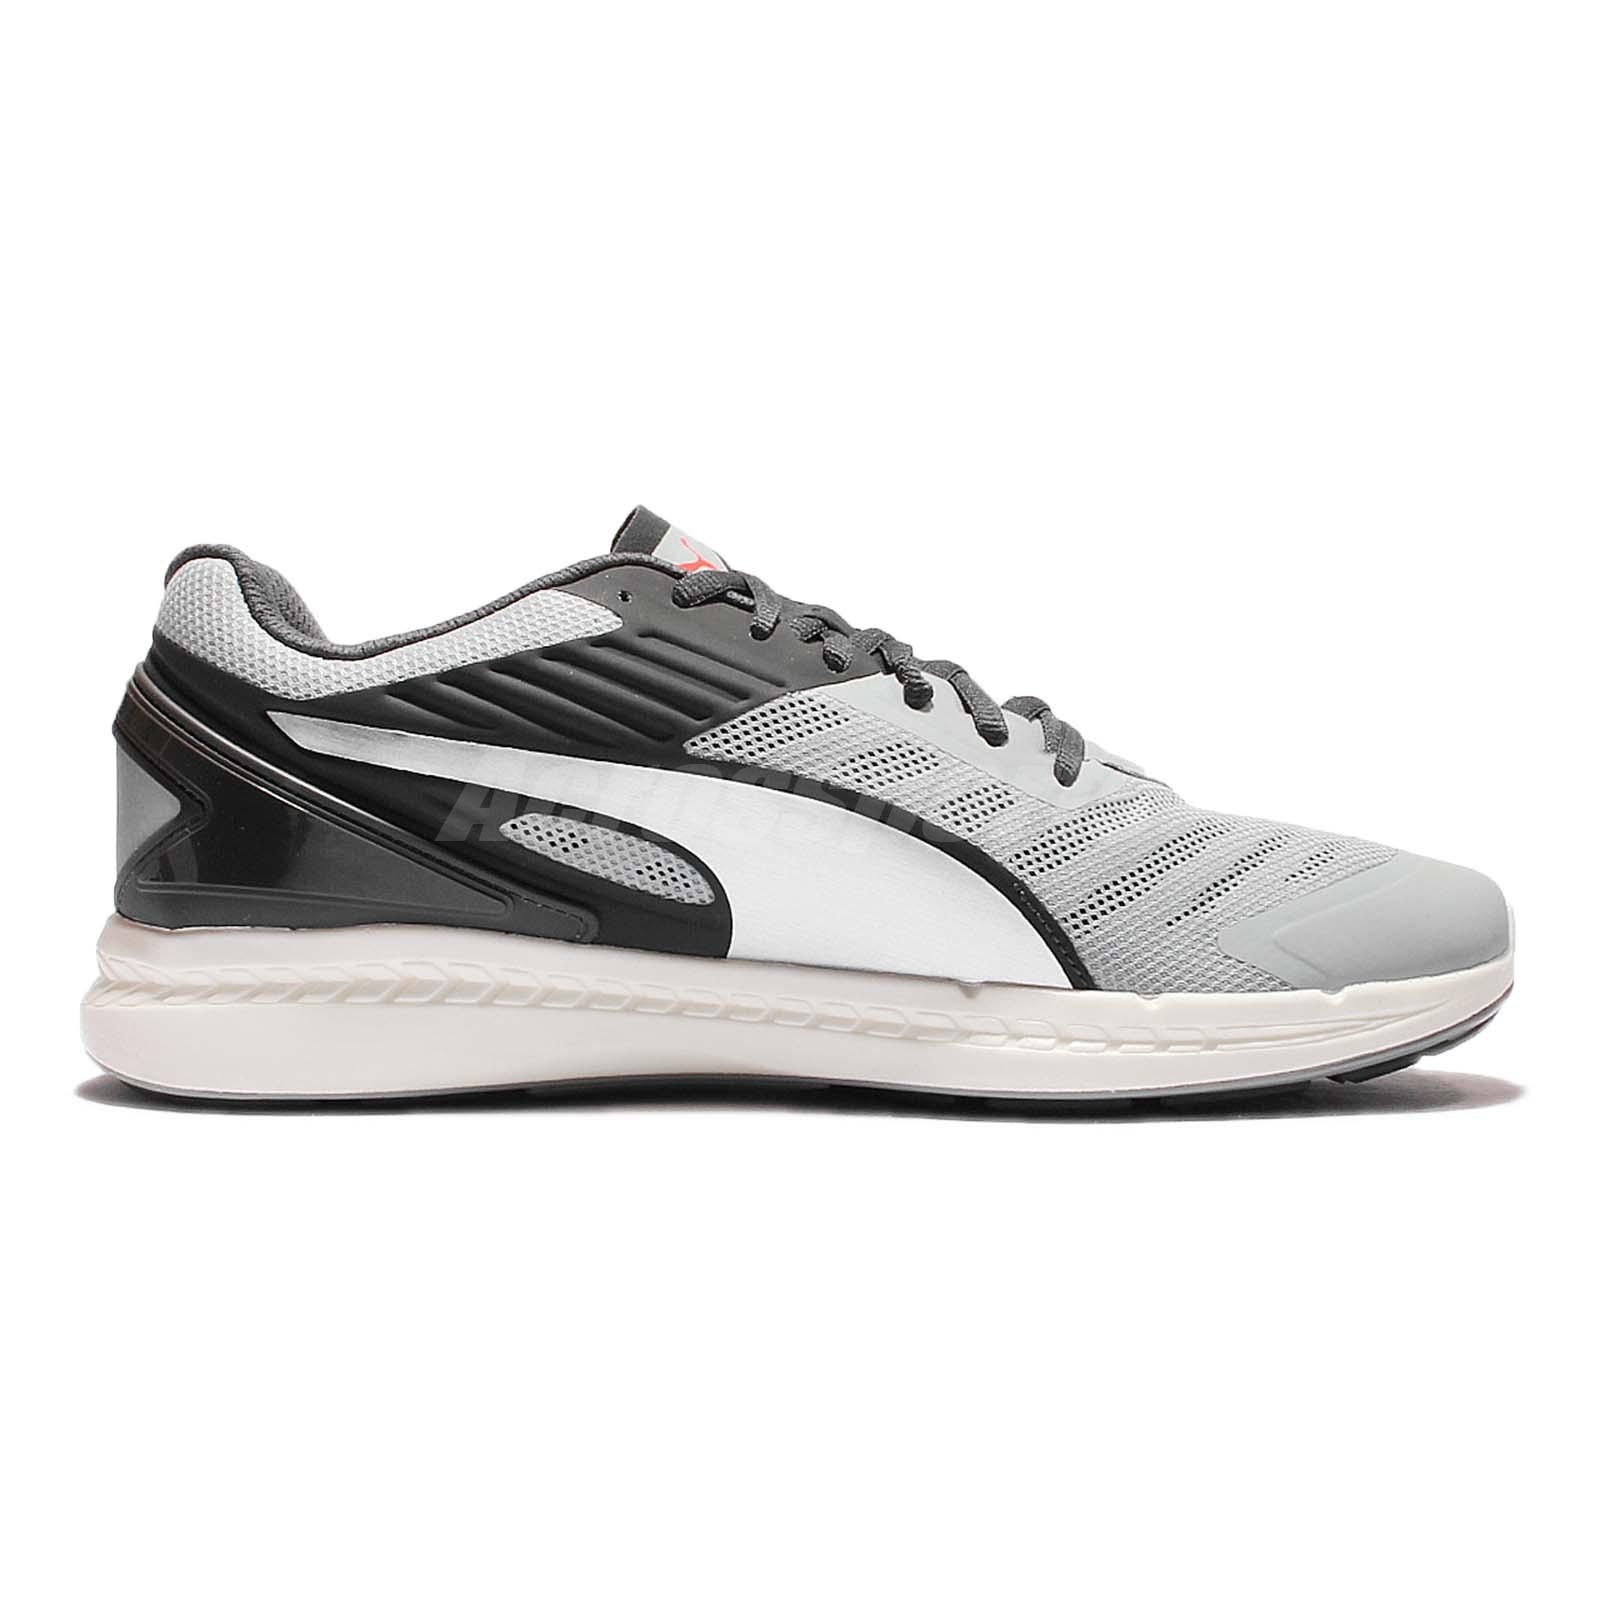 91dc321aaaa10a Puma Ignite V2 Silver Black Mens Cushion Running Shoes Sneakers ...